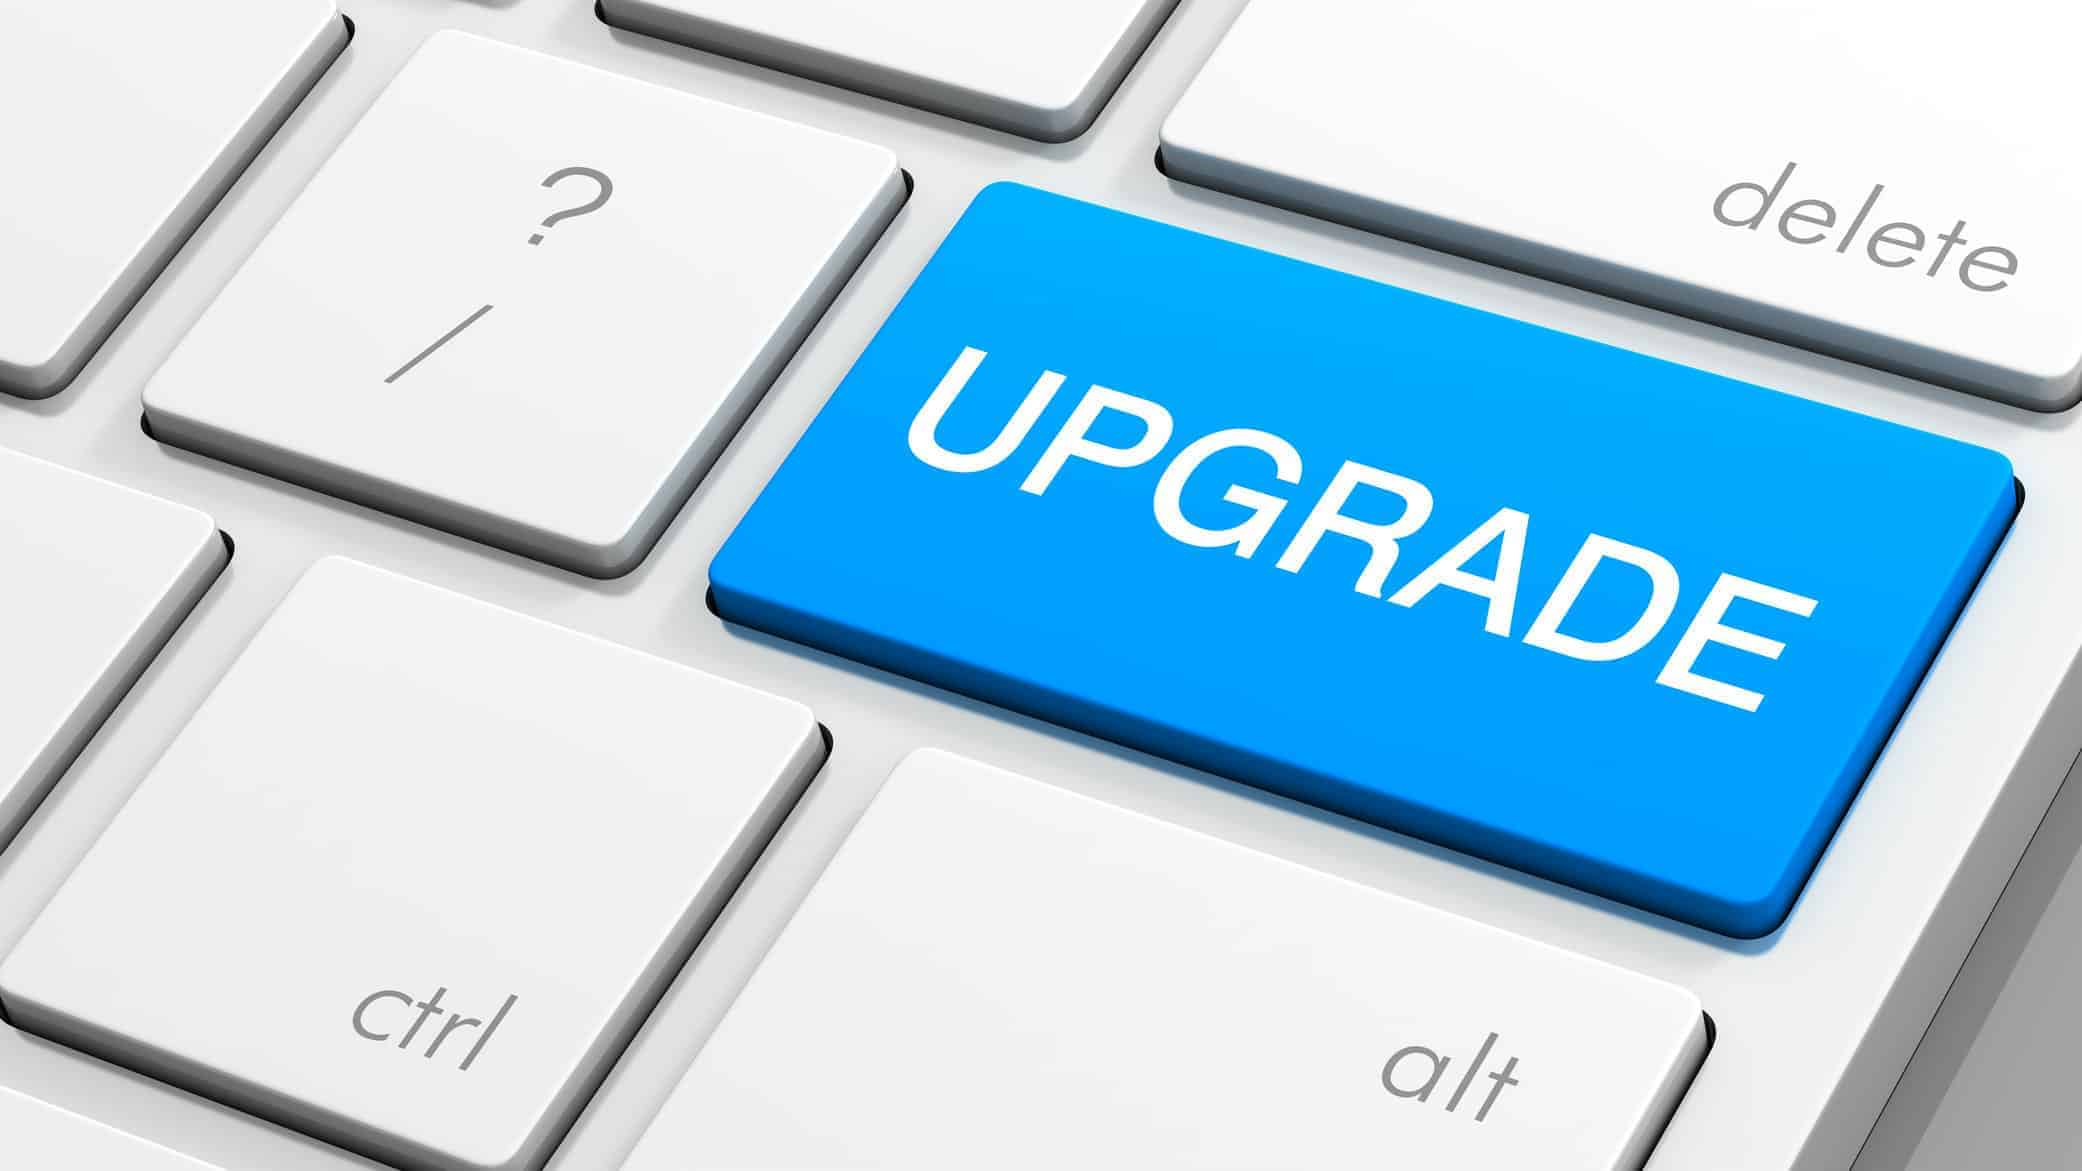 sap-s-4hana-upgrade-is-it-really-worth-it-for-your-organisation